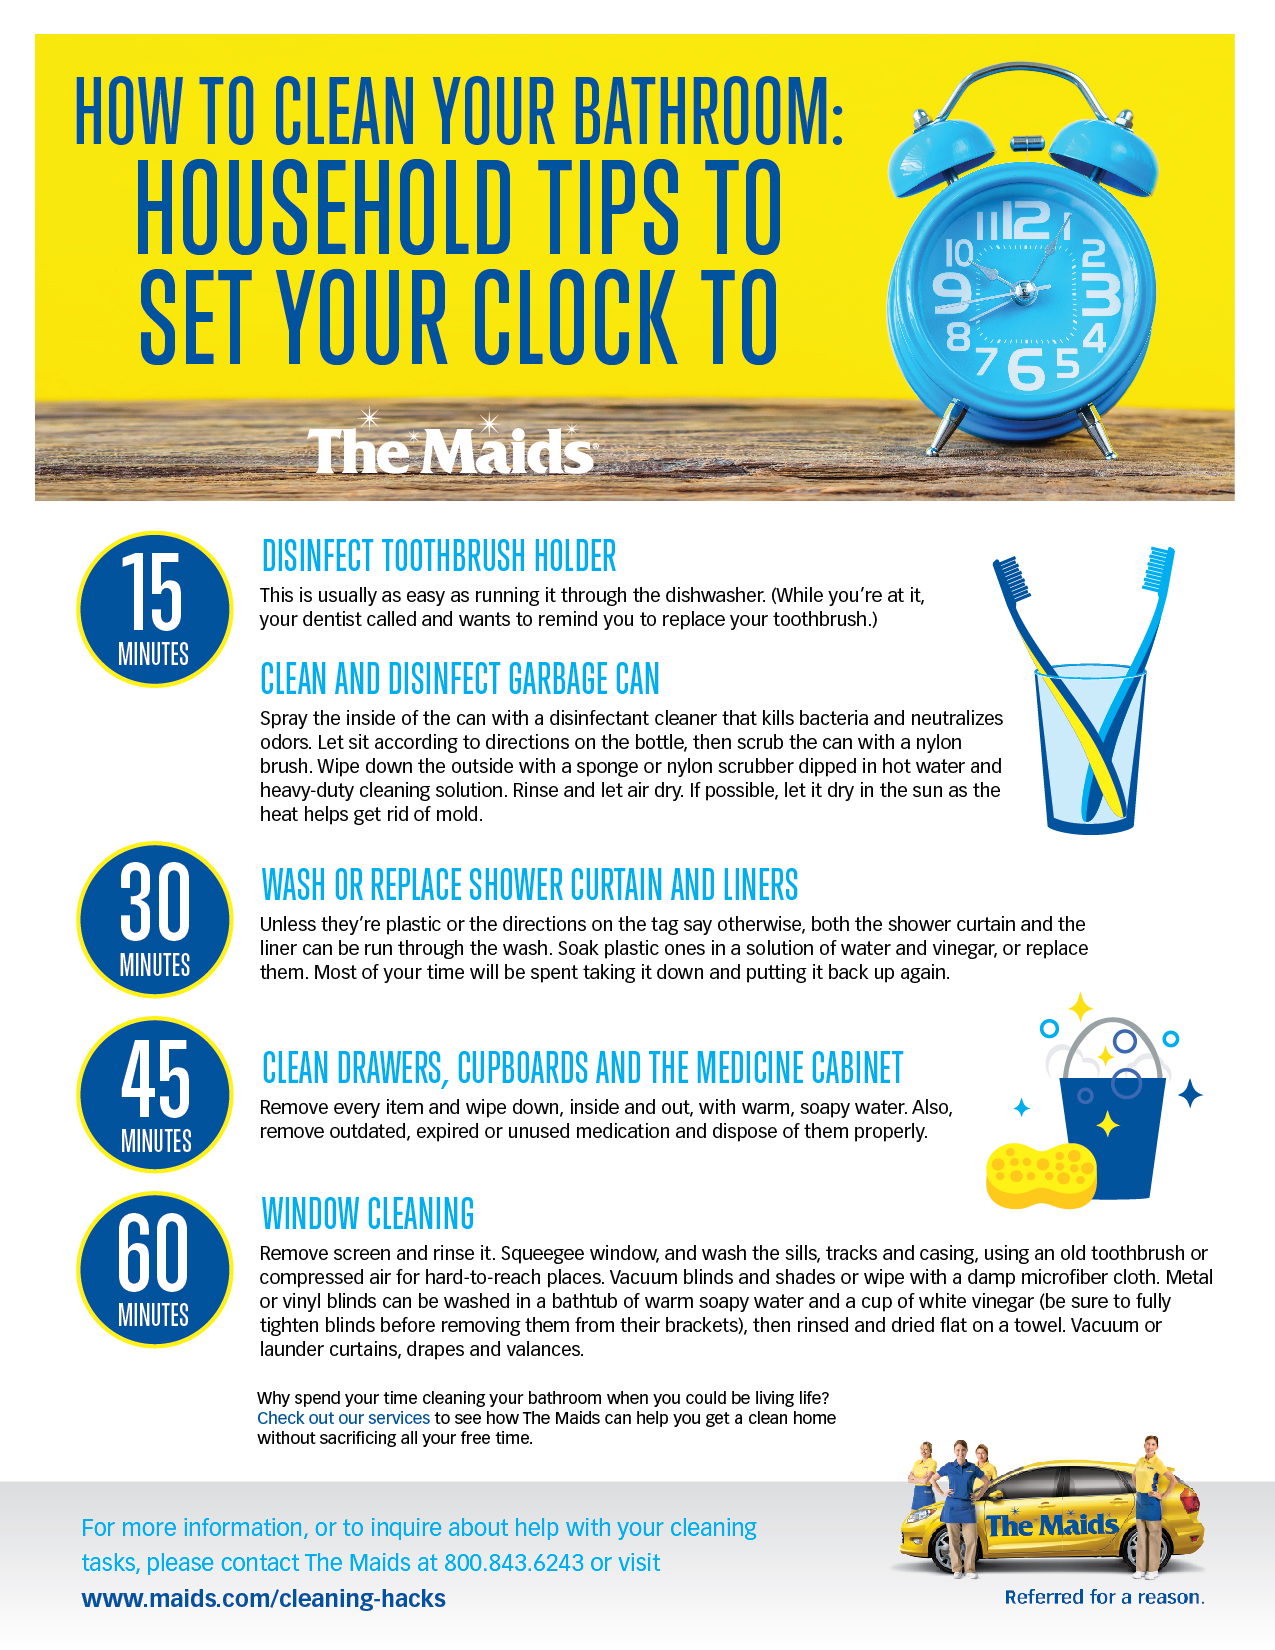 How To Clean Your Bathroom Fast Professional Cleaning Tips From